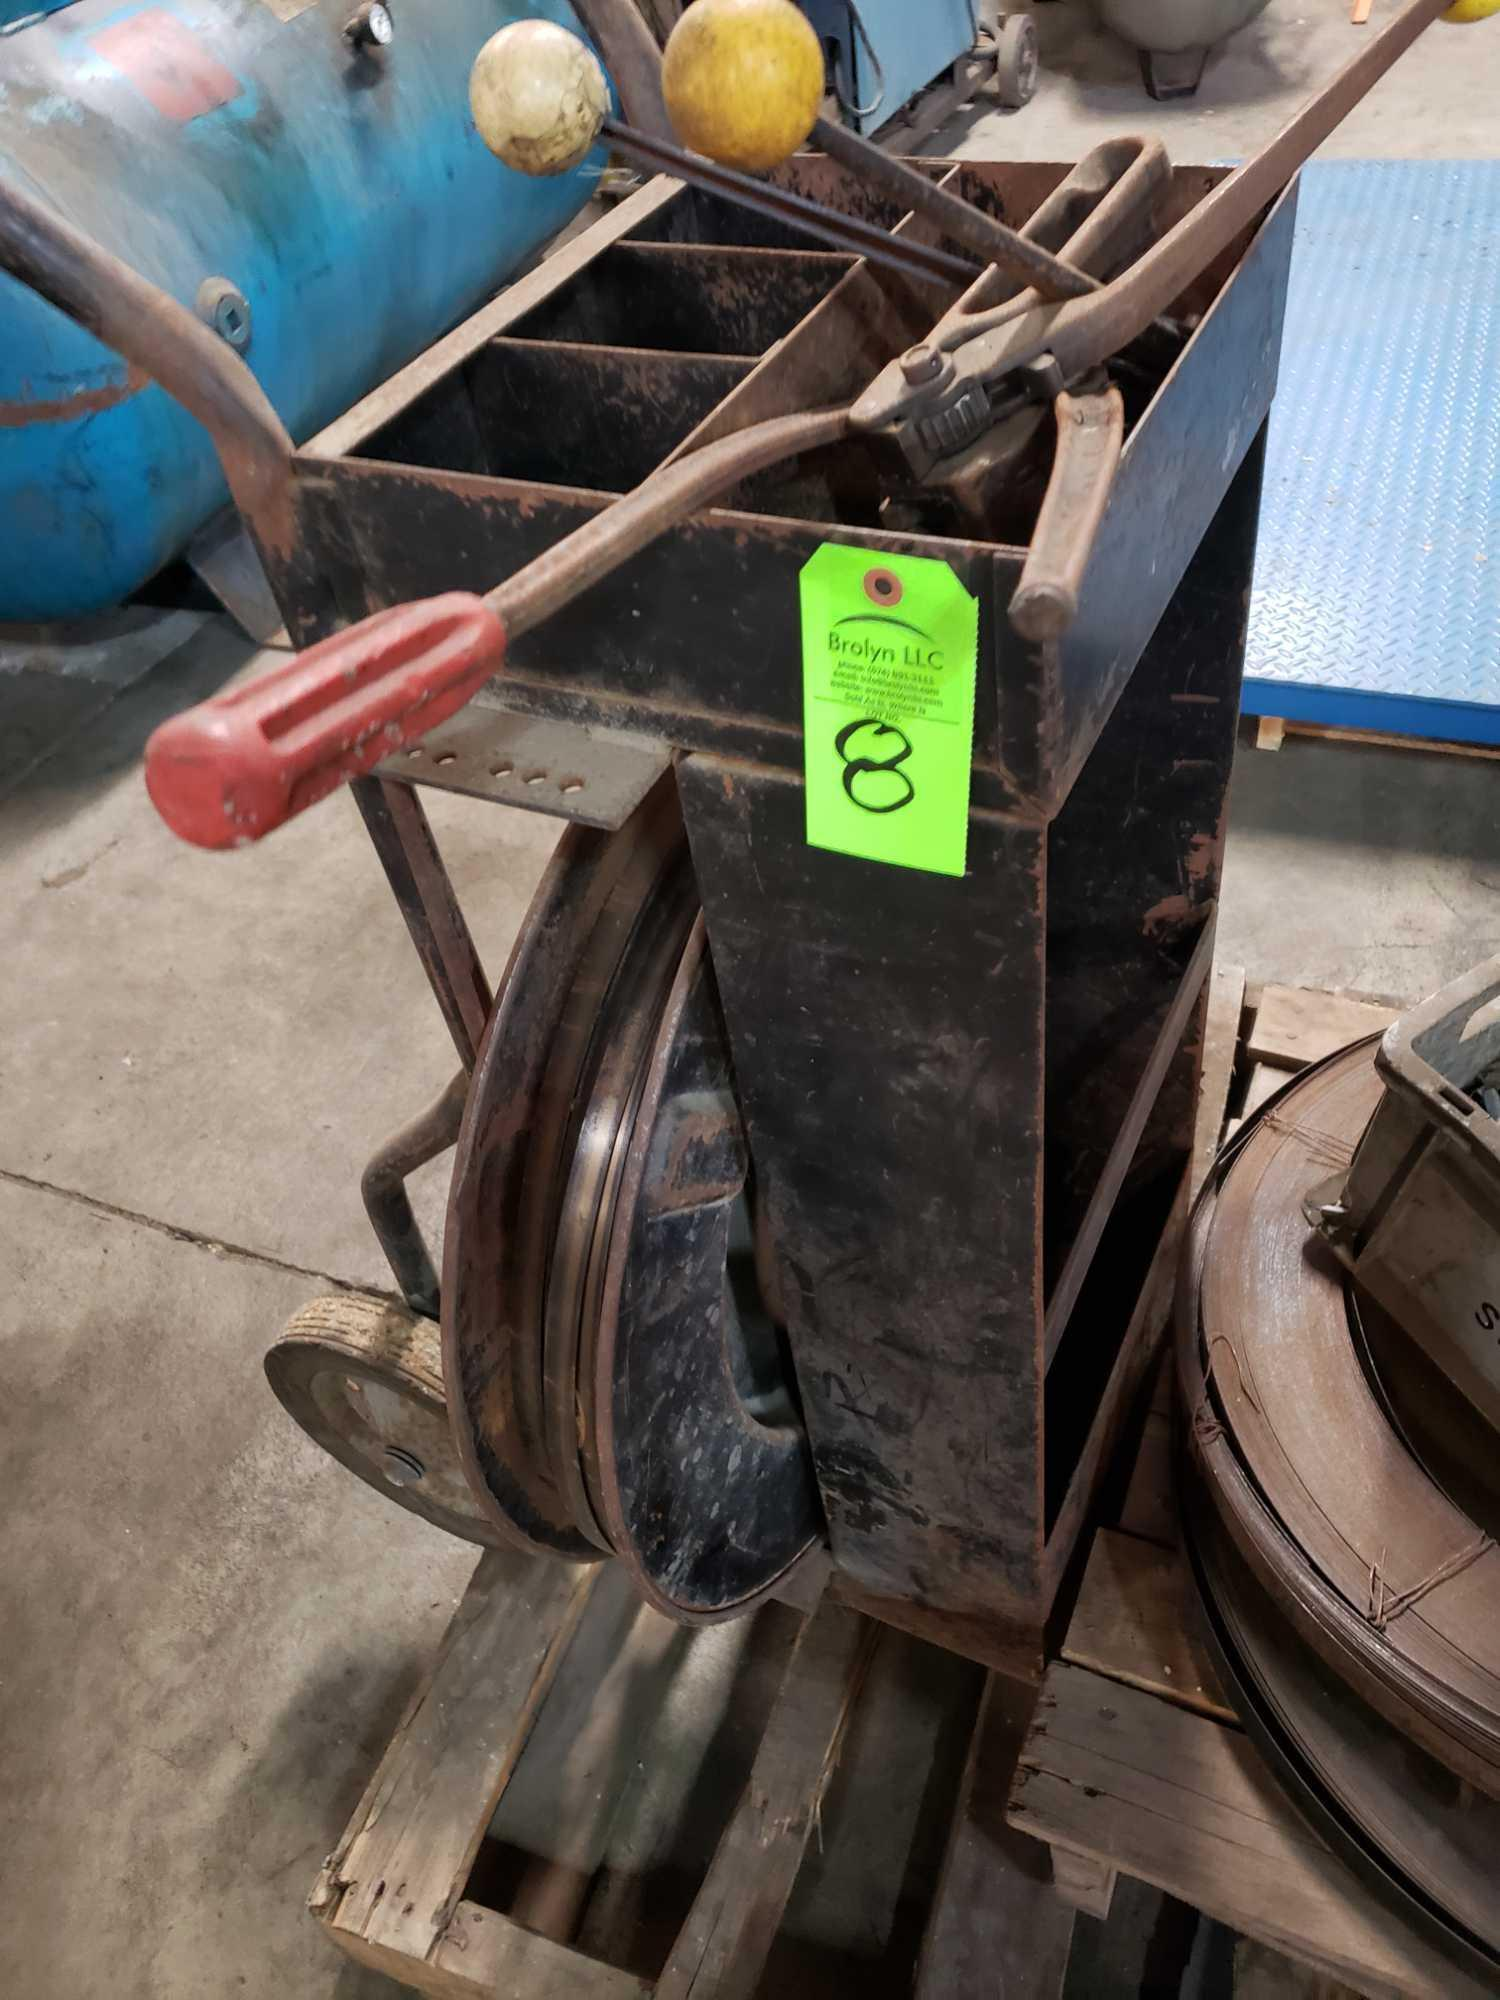 Lot 8 - Steel banding cart with assorted tooling and extra consumables